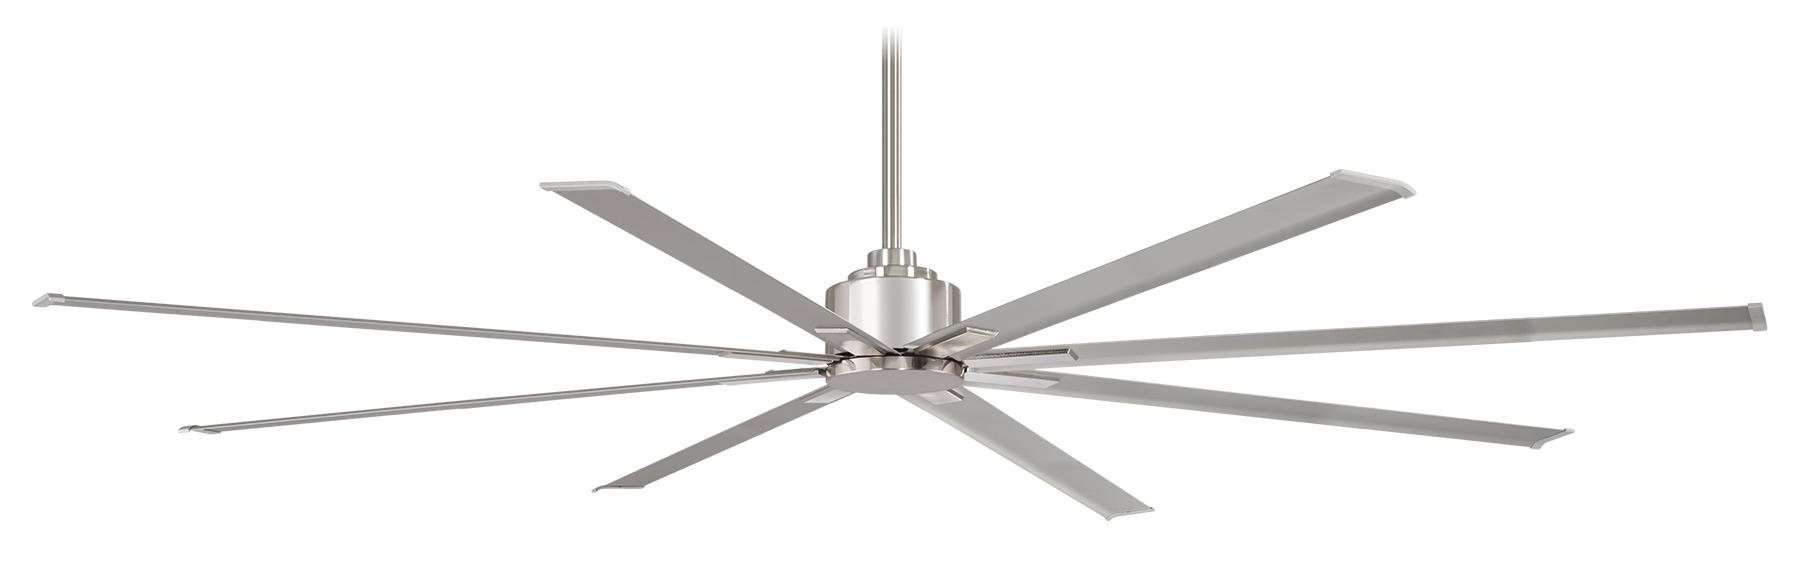 "Minka Aire F896-84-BNW 84"" Wet Rated Xtreme H2O Ceiling Fan Motor in Brushed Nickel"